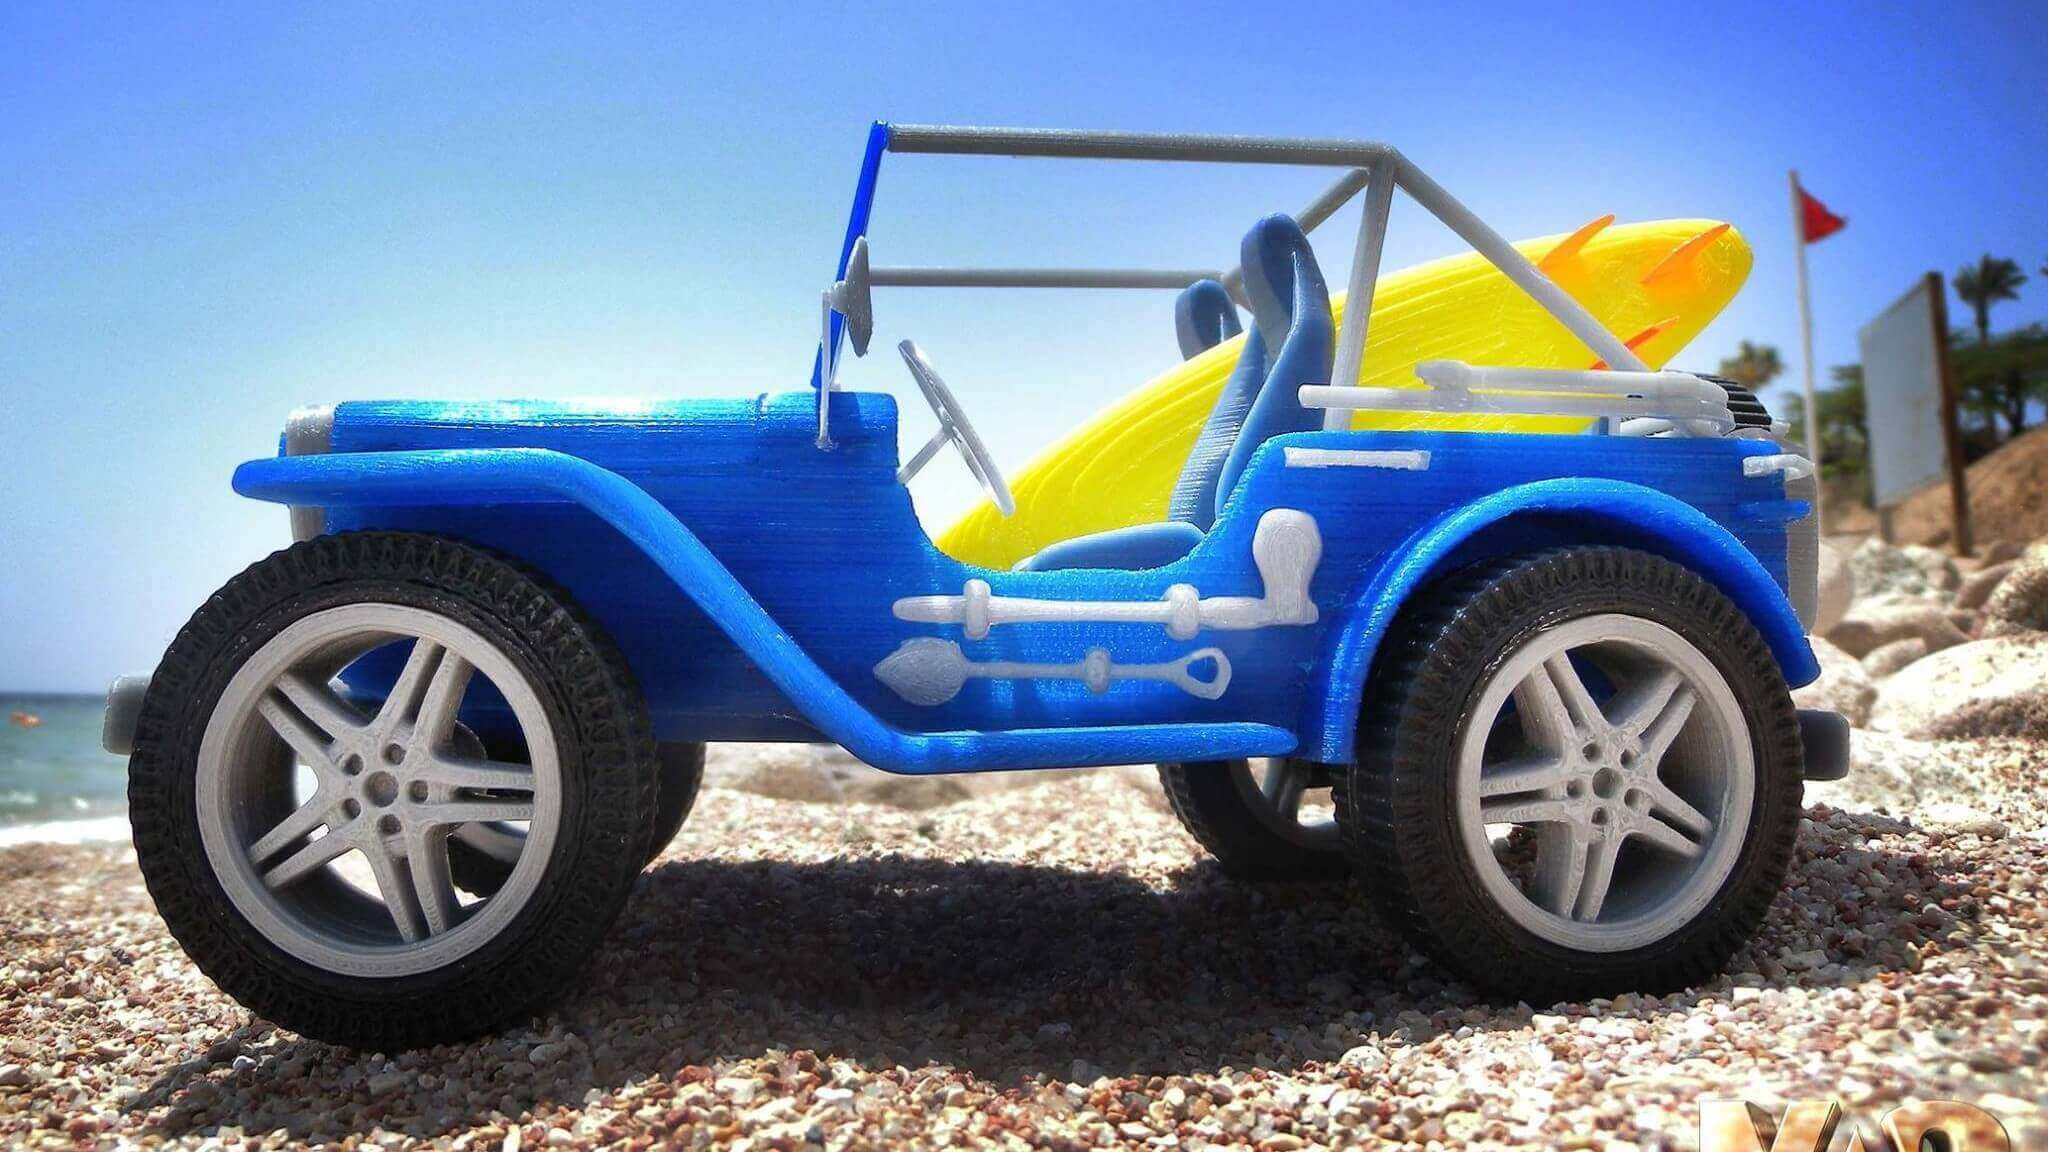 Stunning 3D Printed Car Replica for just $4,99 | All3DP